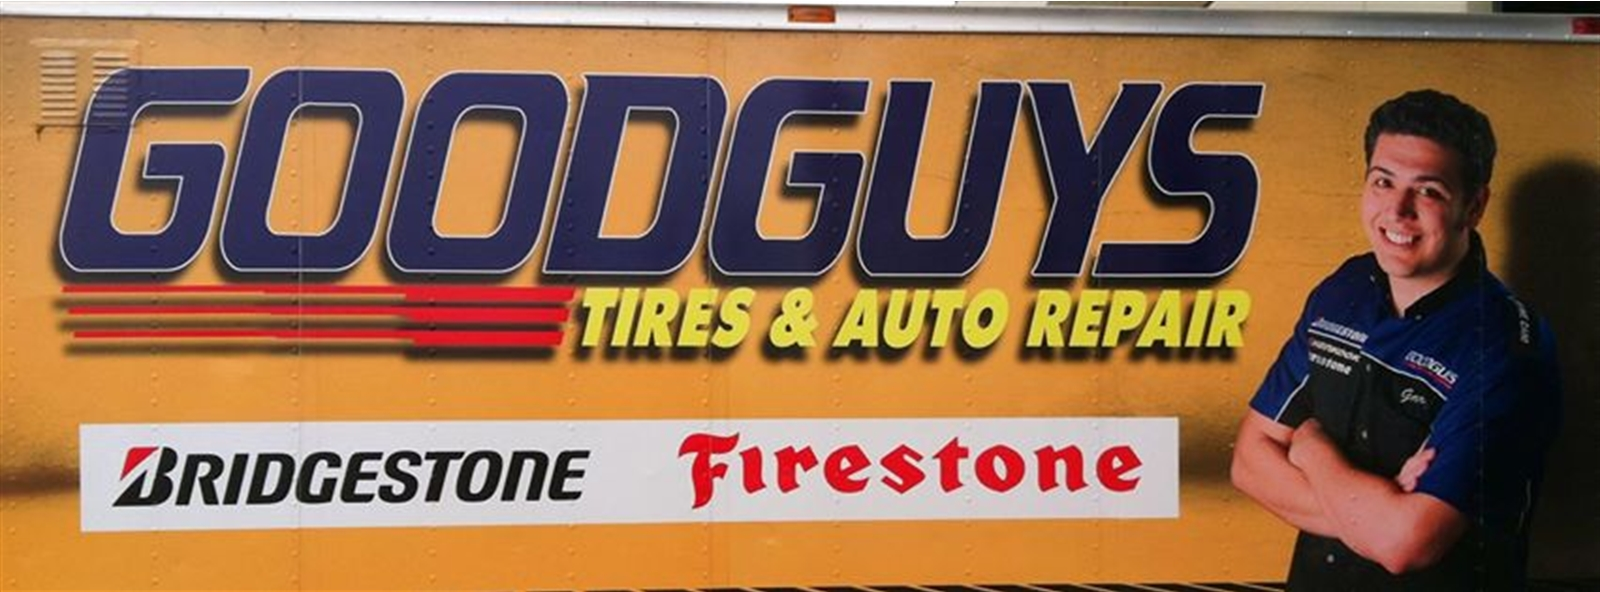 Goodguys Tires and Auto Repair Credit Card Payment